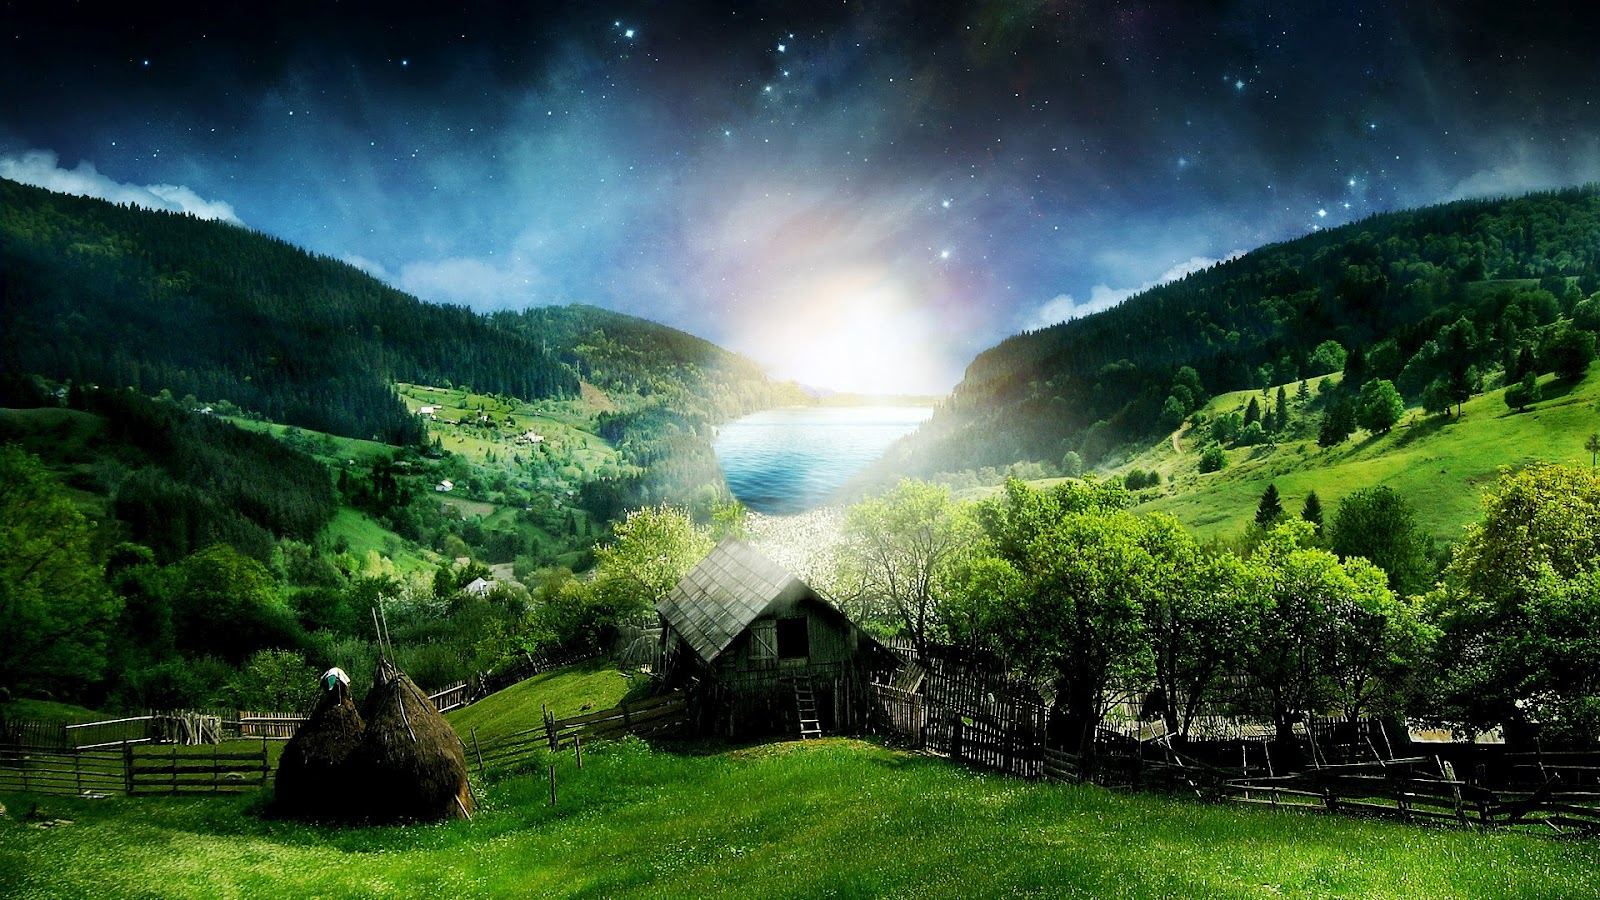 HD WALLPAPERS: Free Laptop HD Wallpapers Download